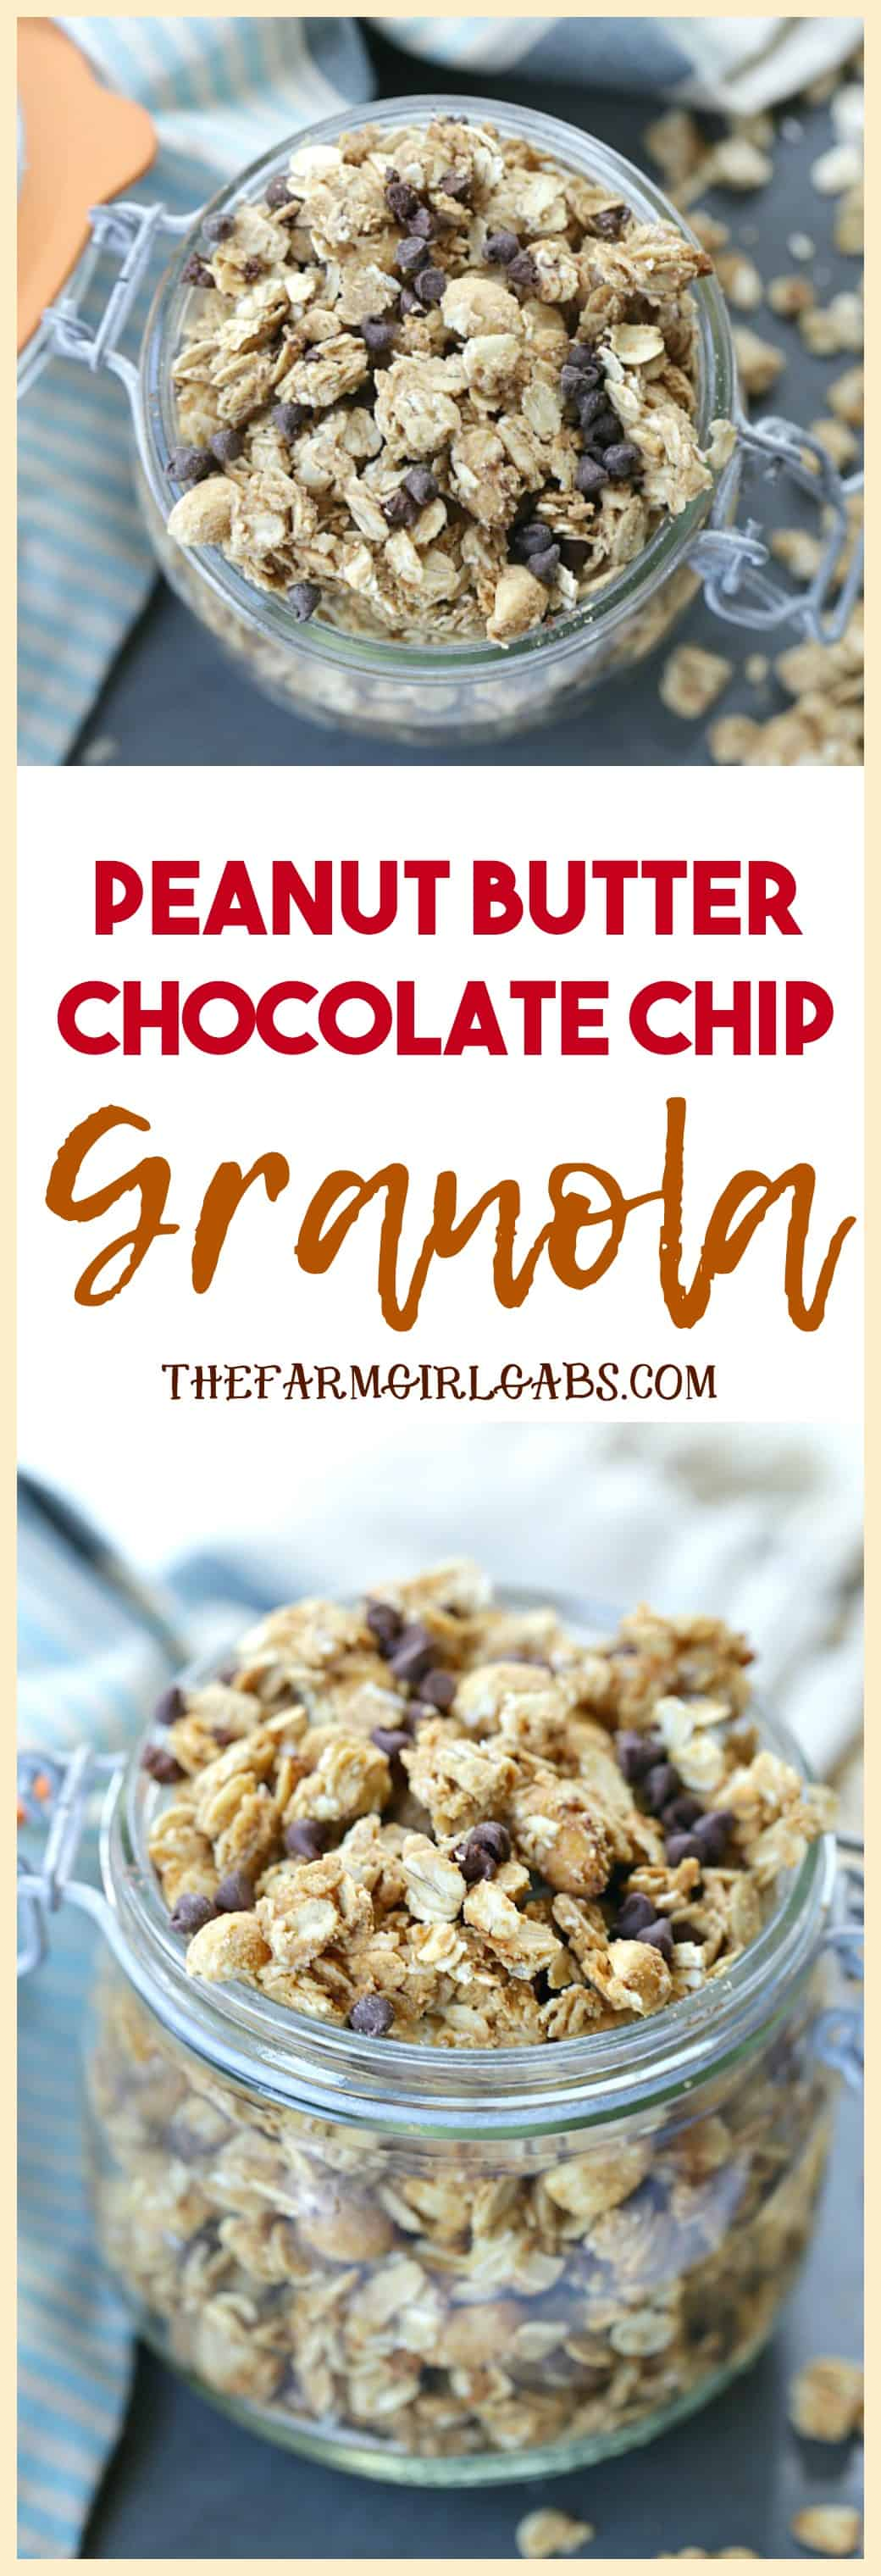 For breakfast or a quick snack, this easy Peanut Butter Chocolate Chip Granola recipe will have everyone begging for more! #granola #chocolaterecipe #granolabars #breakfast